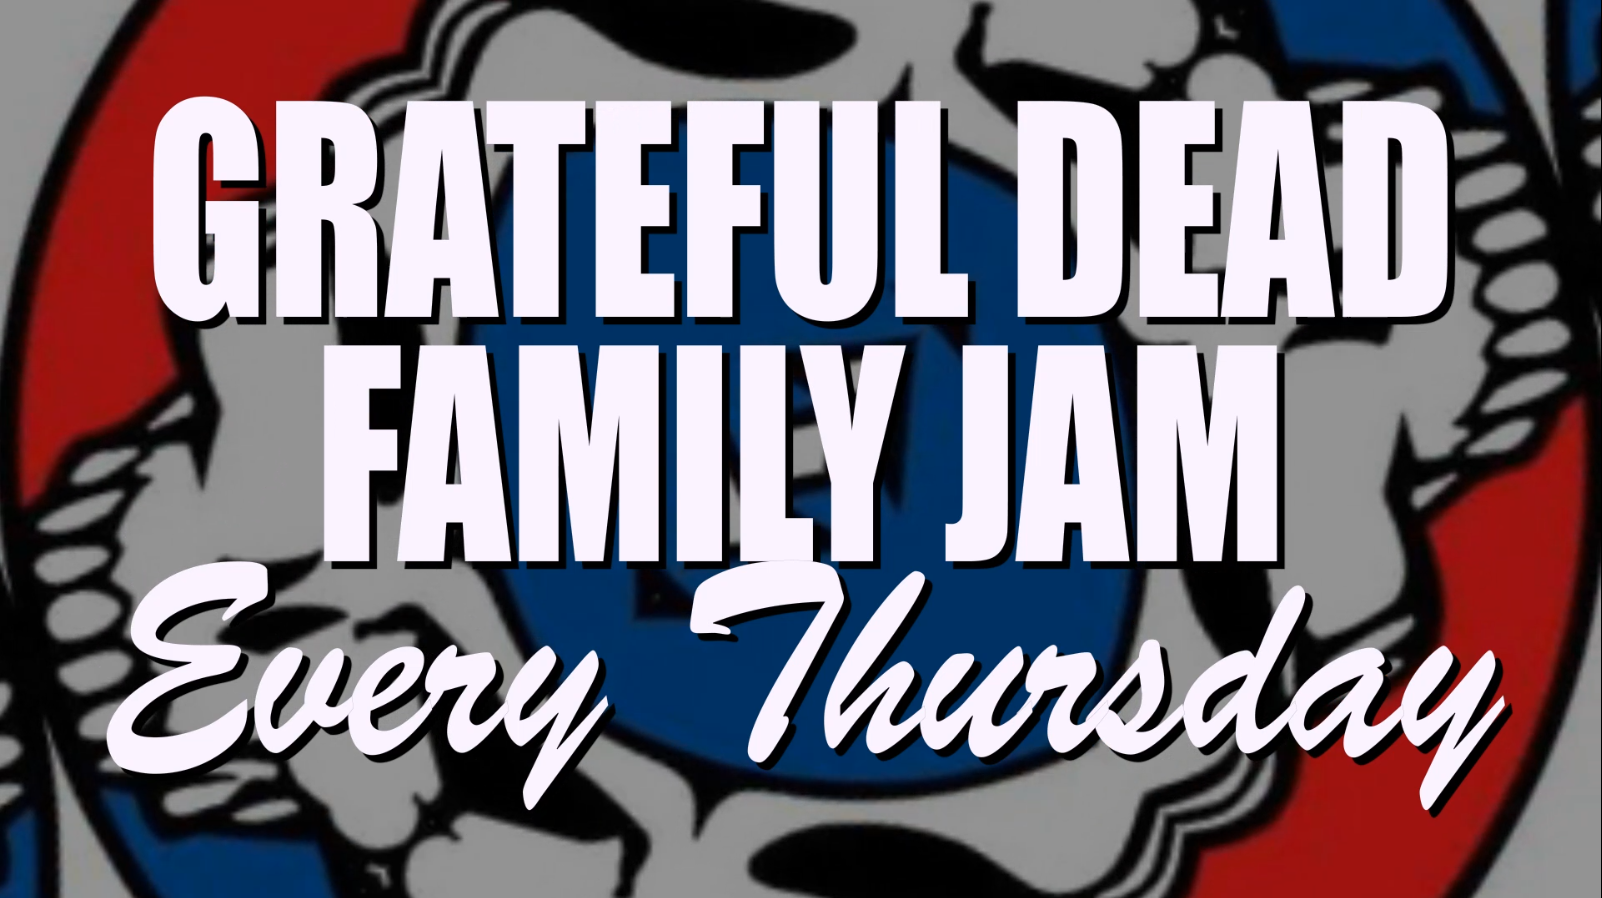 The Grateful Dead Family Jam